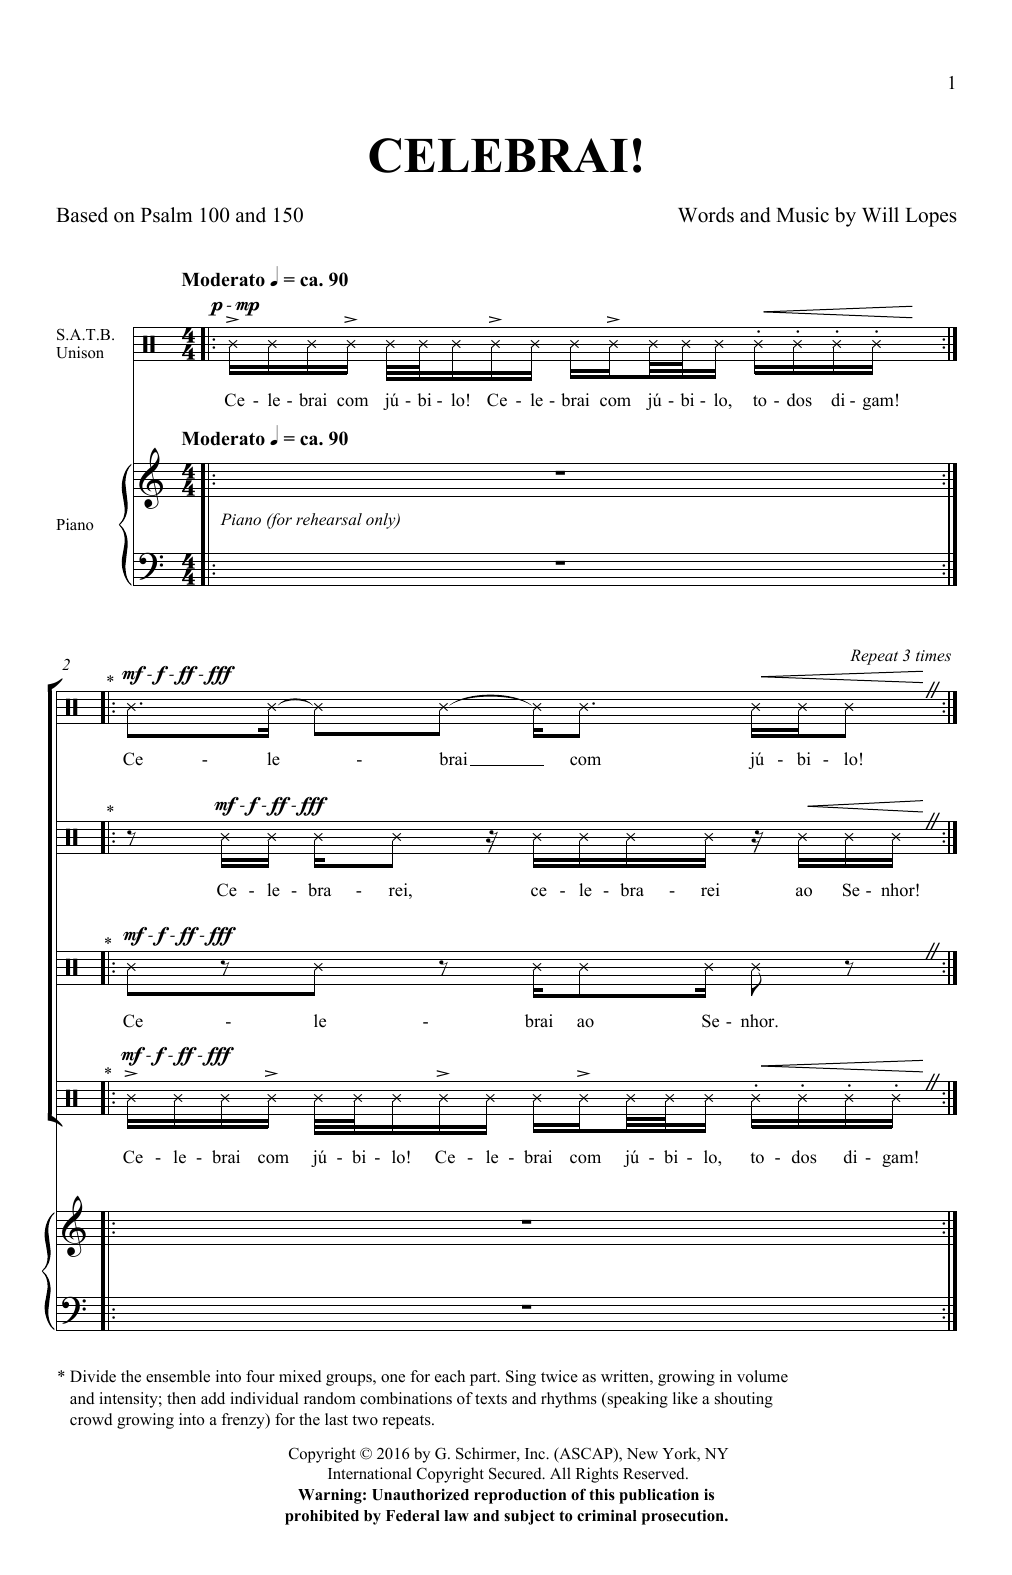 Will Lopes Celebrai sheet music notes and chords. Download Printable PDF.